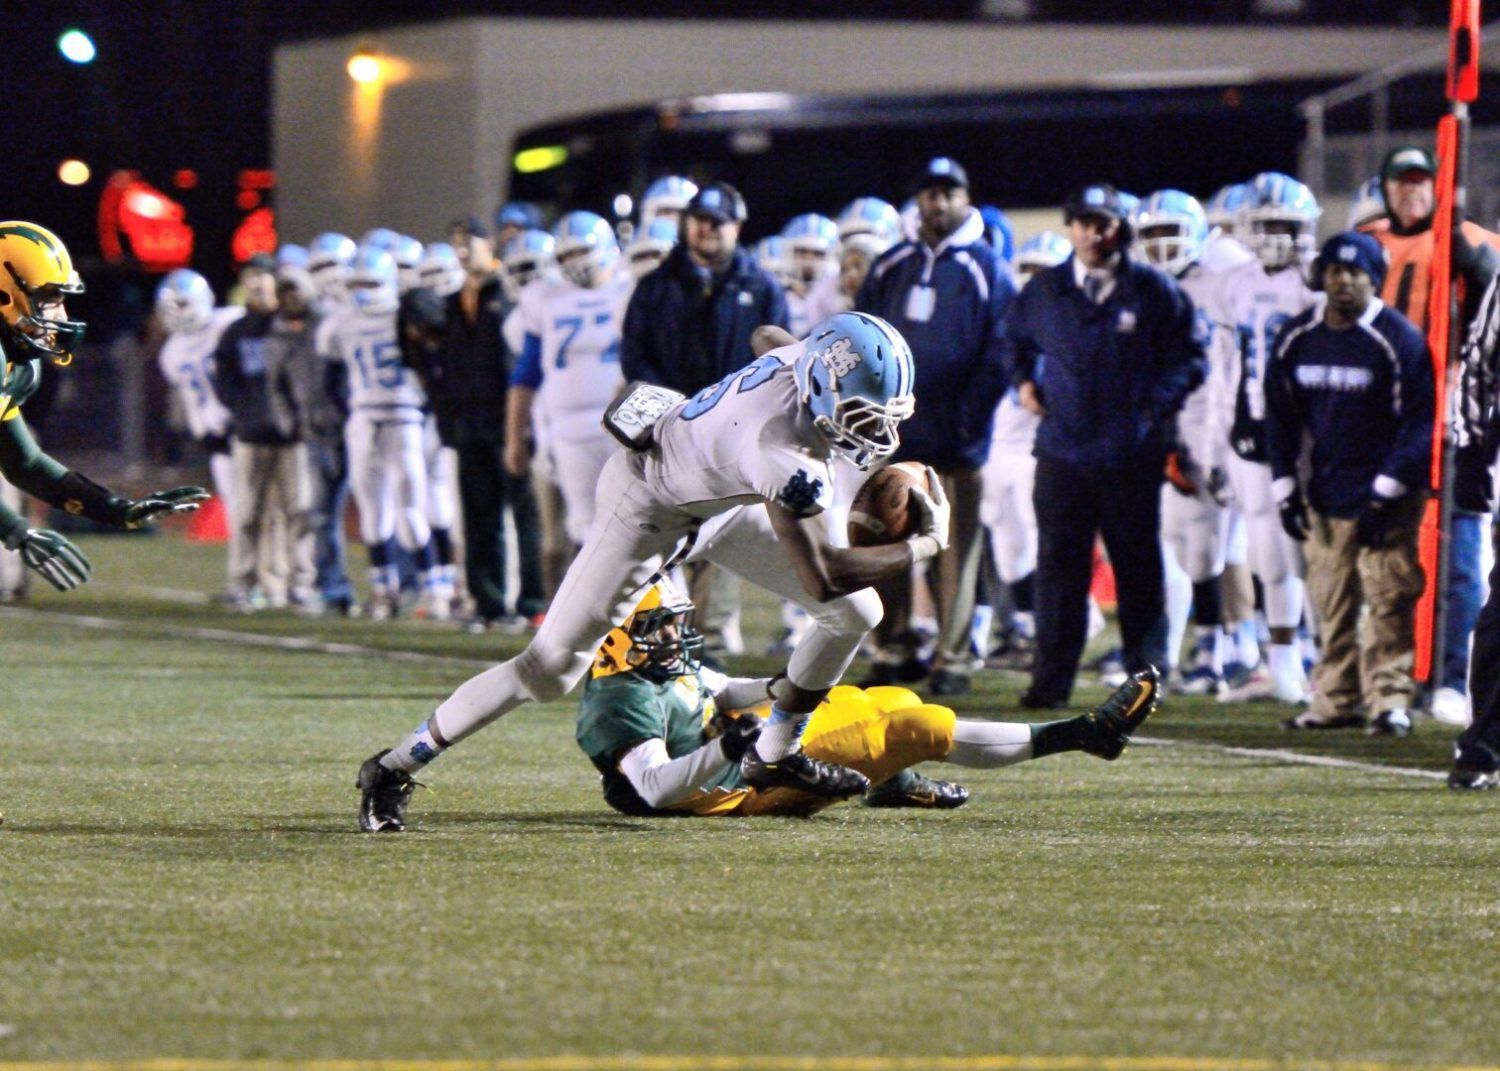 Mona Shores makes a major statement, and captures a district title, with a 41-14 win over Midland Dow